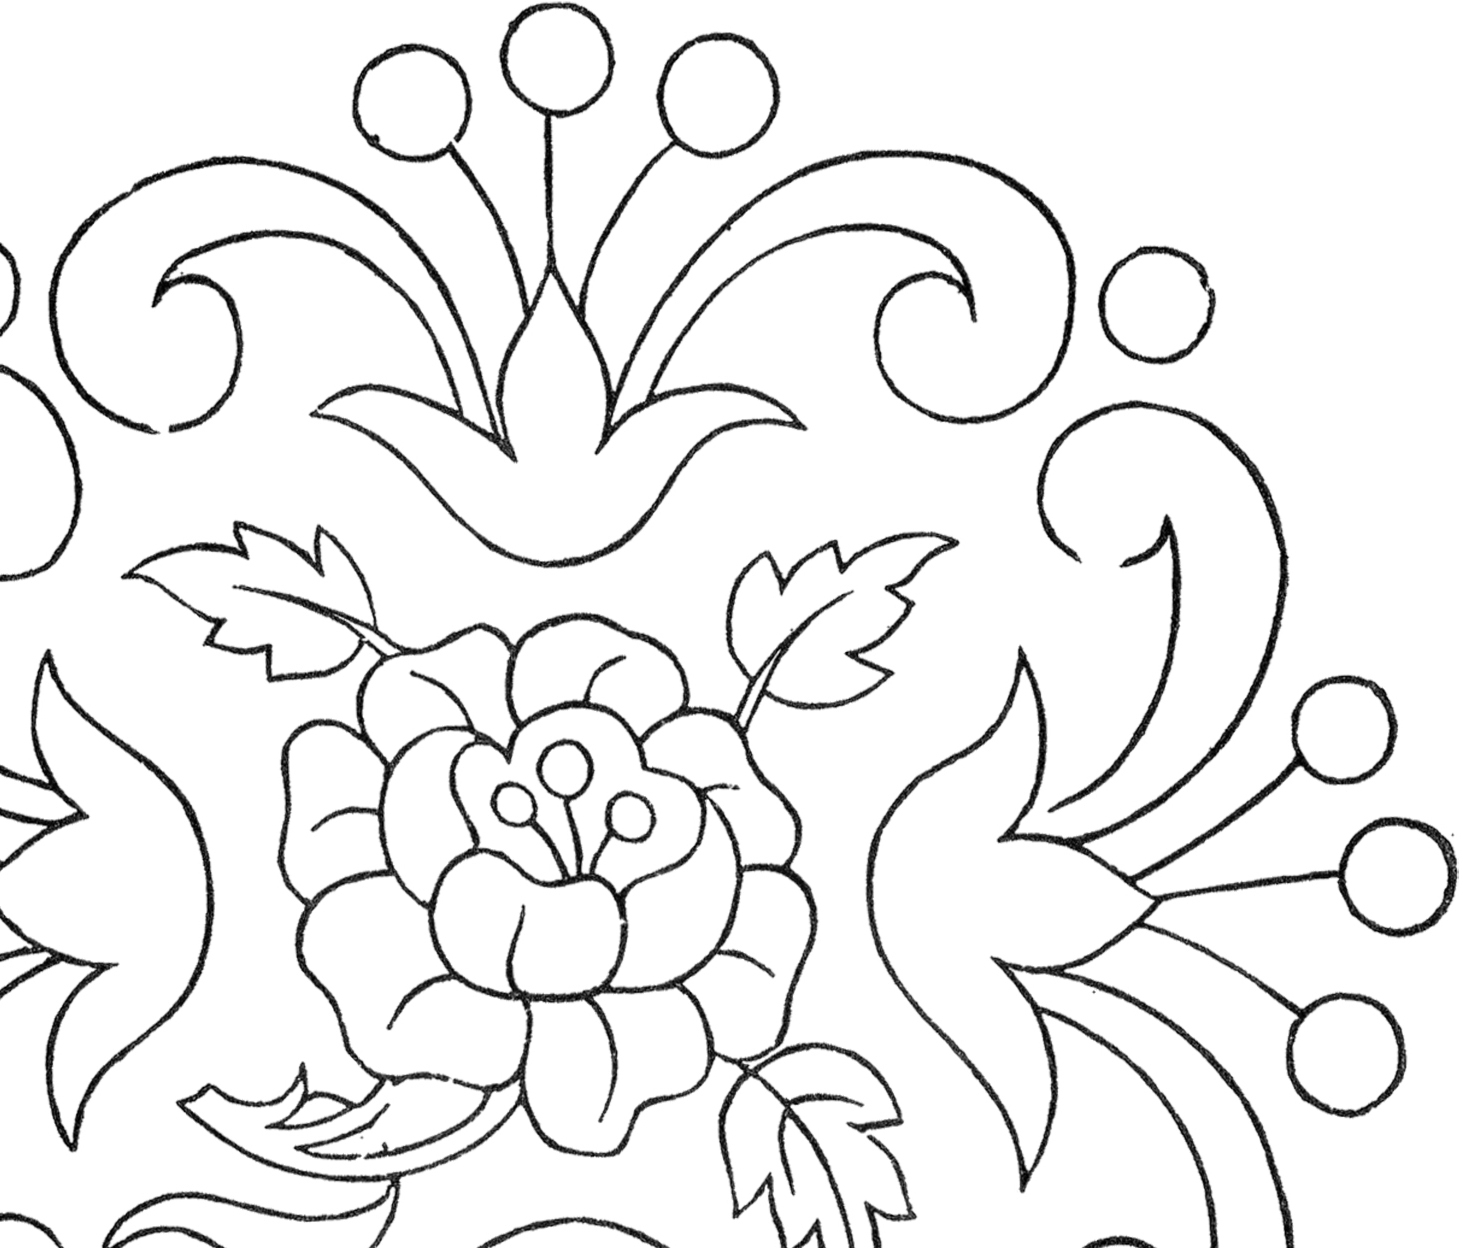 Rose Patterns For Embroidery Vintage Floral Embroidery Pattern The Graphics Fairy